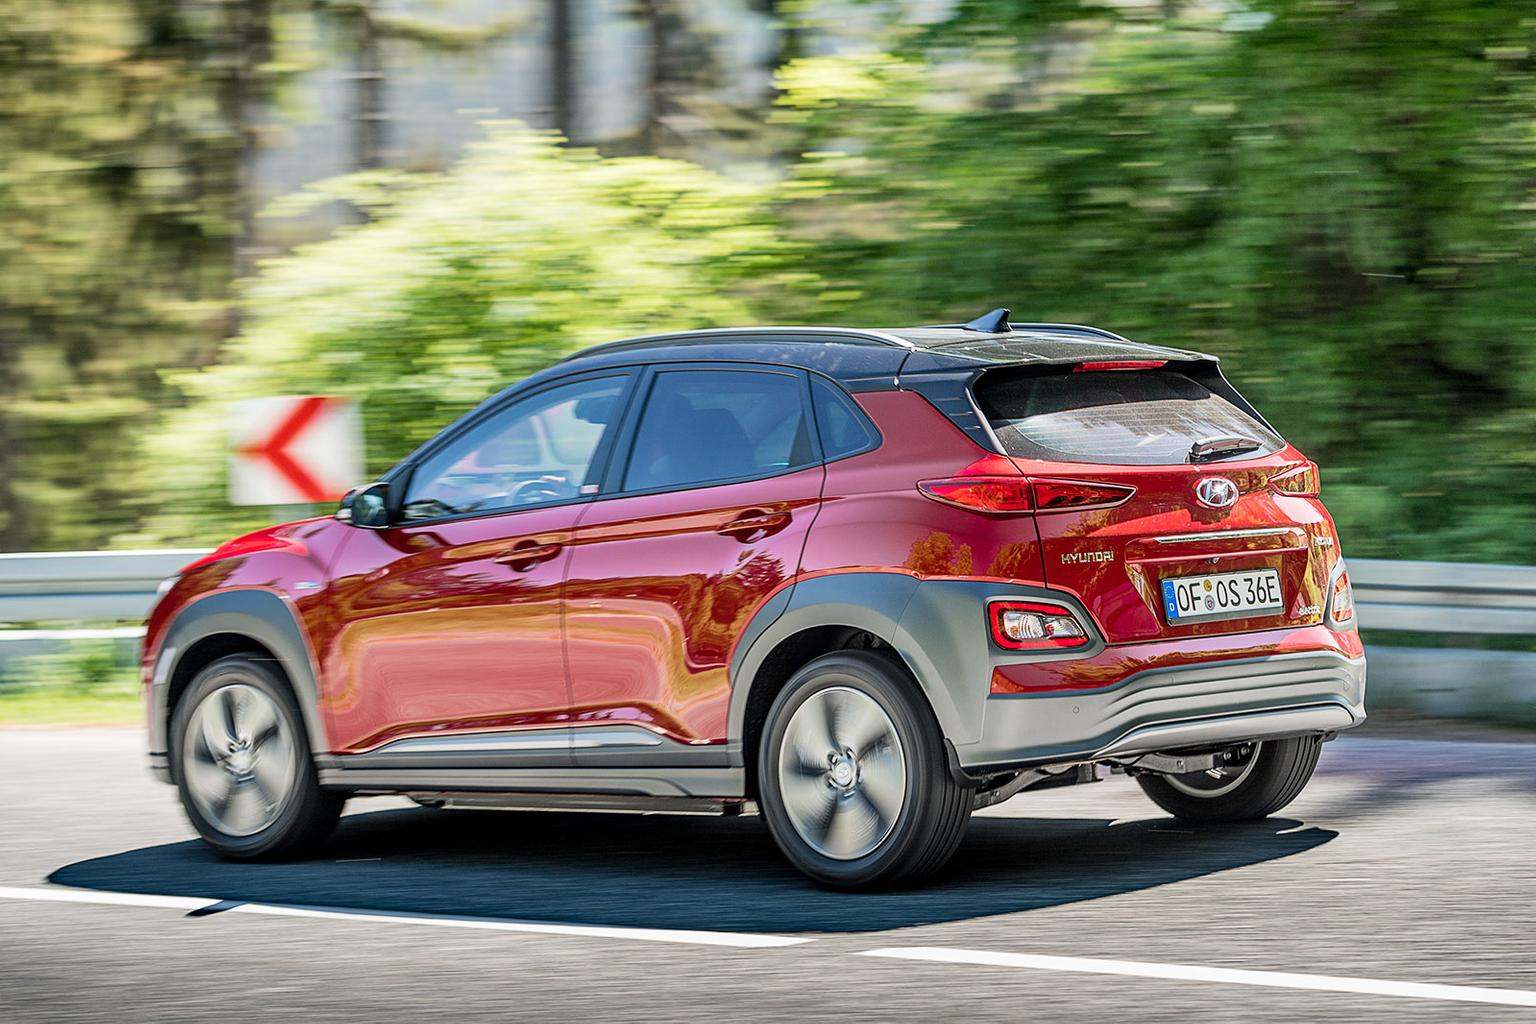 2018 Hyundai Kona Electric review – price, specs and release date